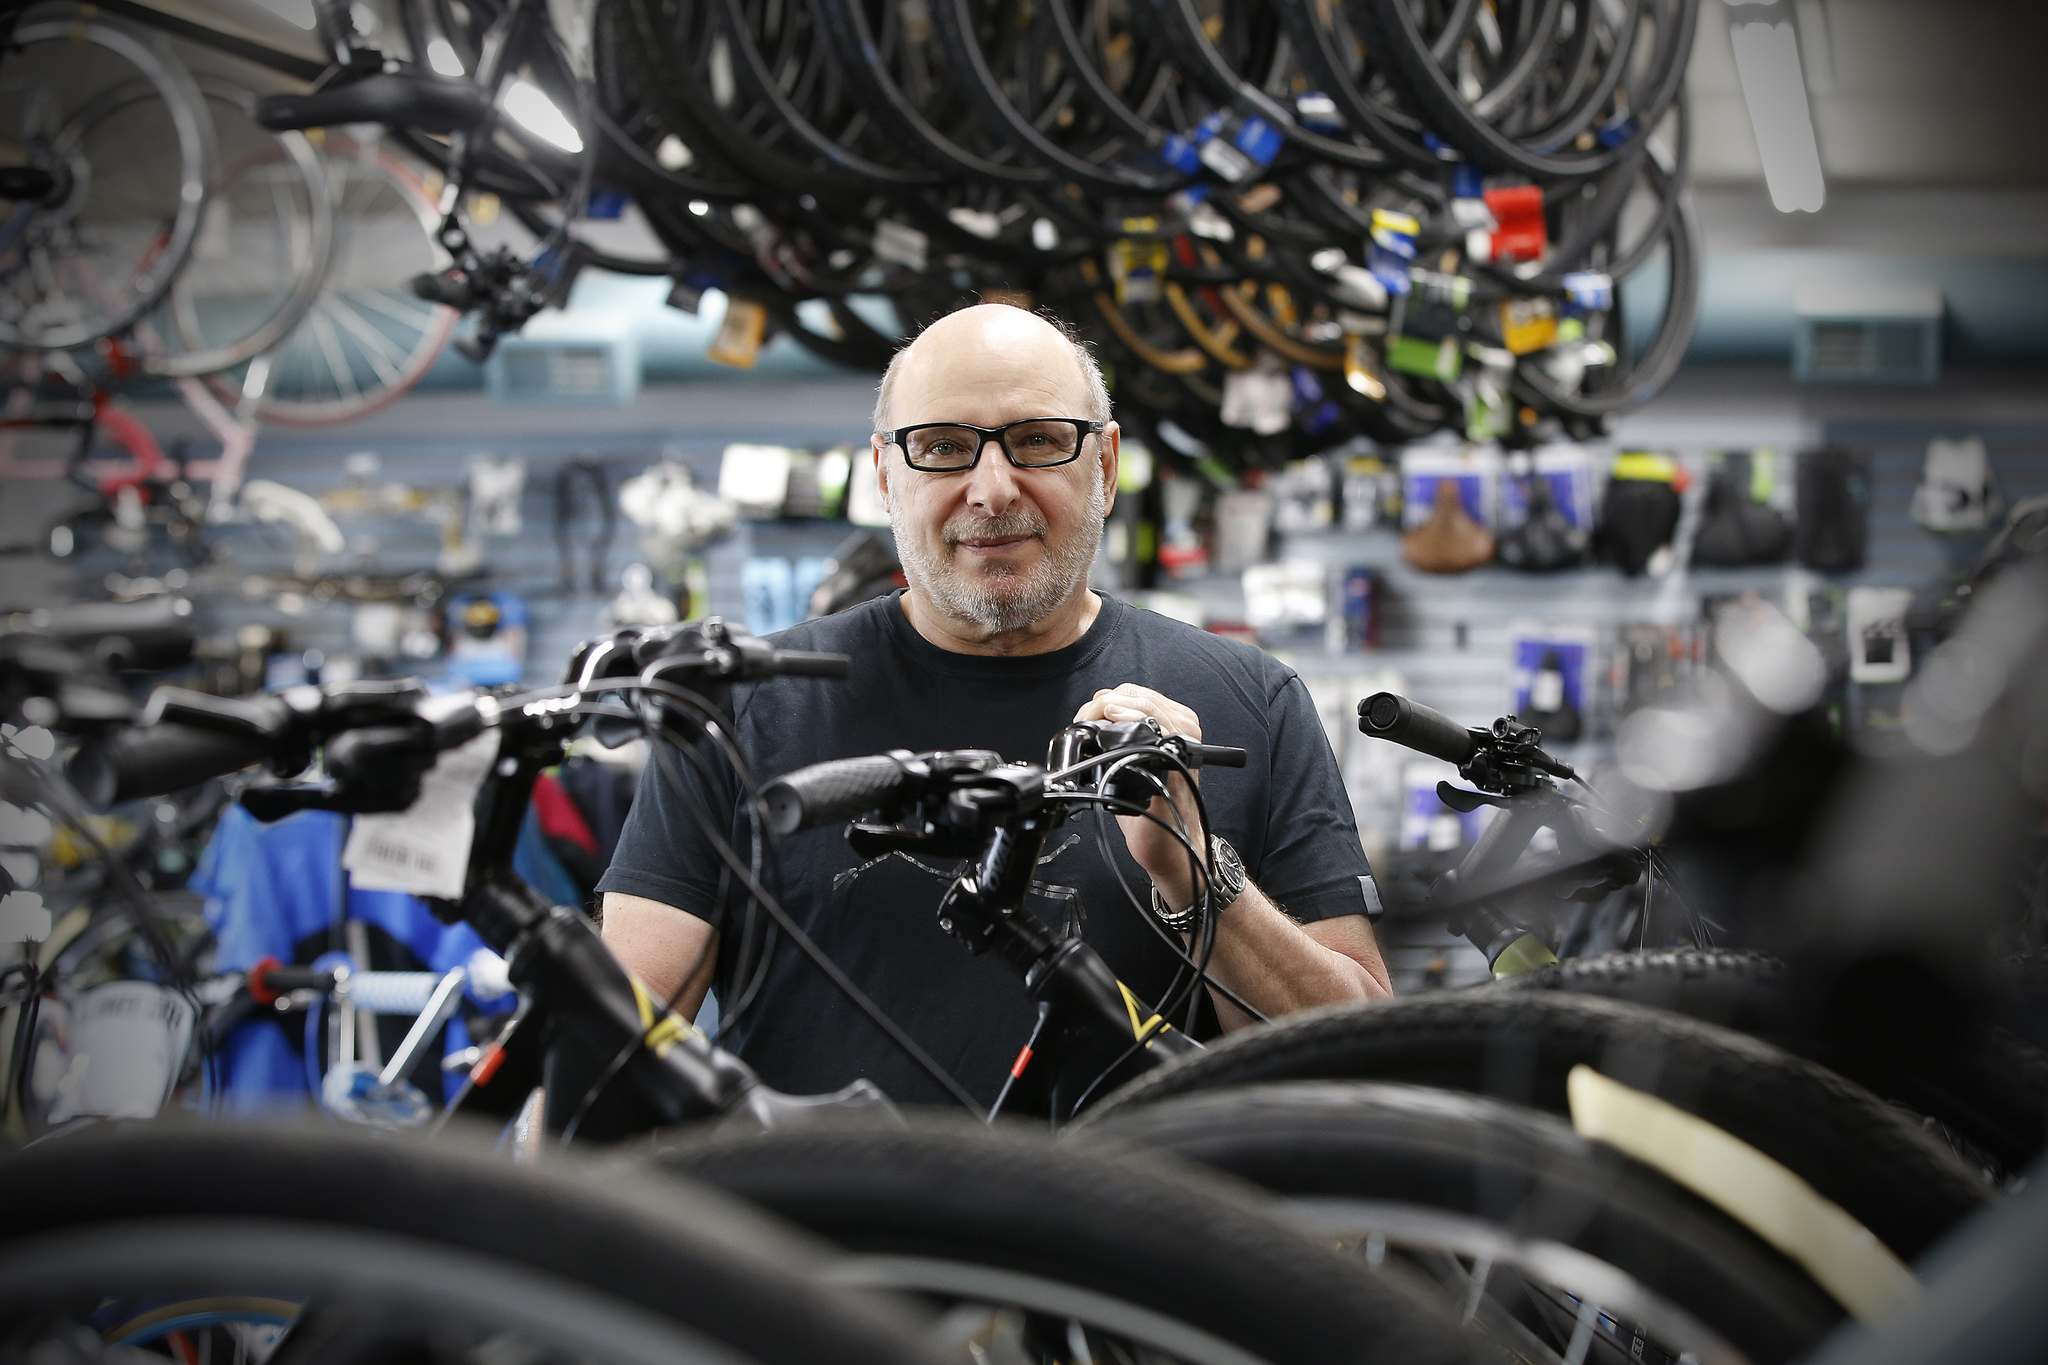 Brian Burke, owner of Olympia Cycle and Ski on St. Mary's Road, is seeing a boost in business during this COVID-19 pandemic.</p>